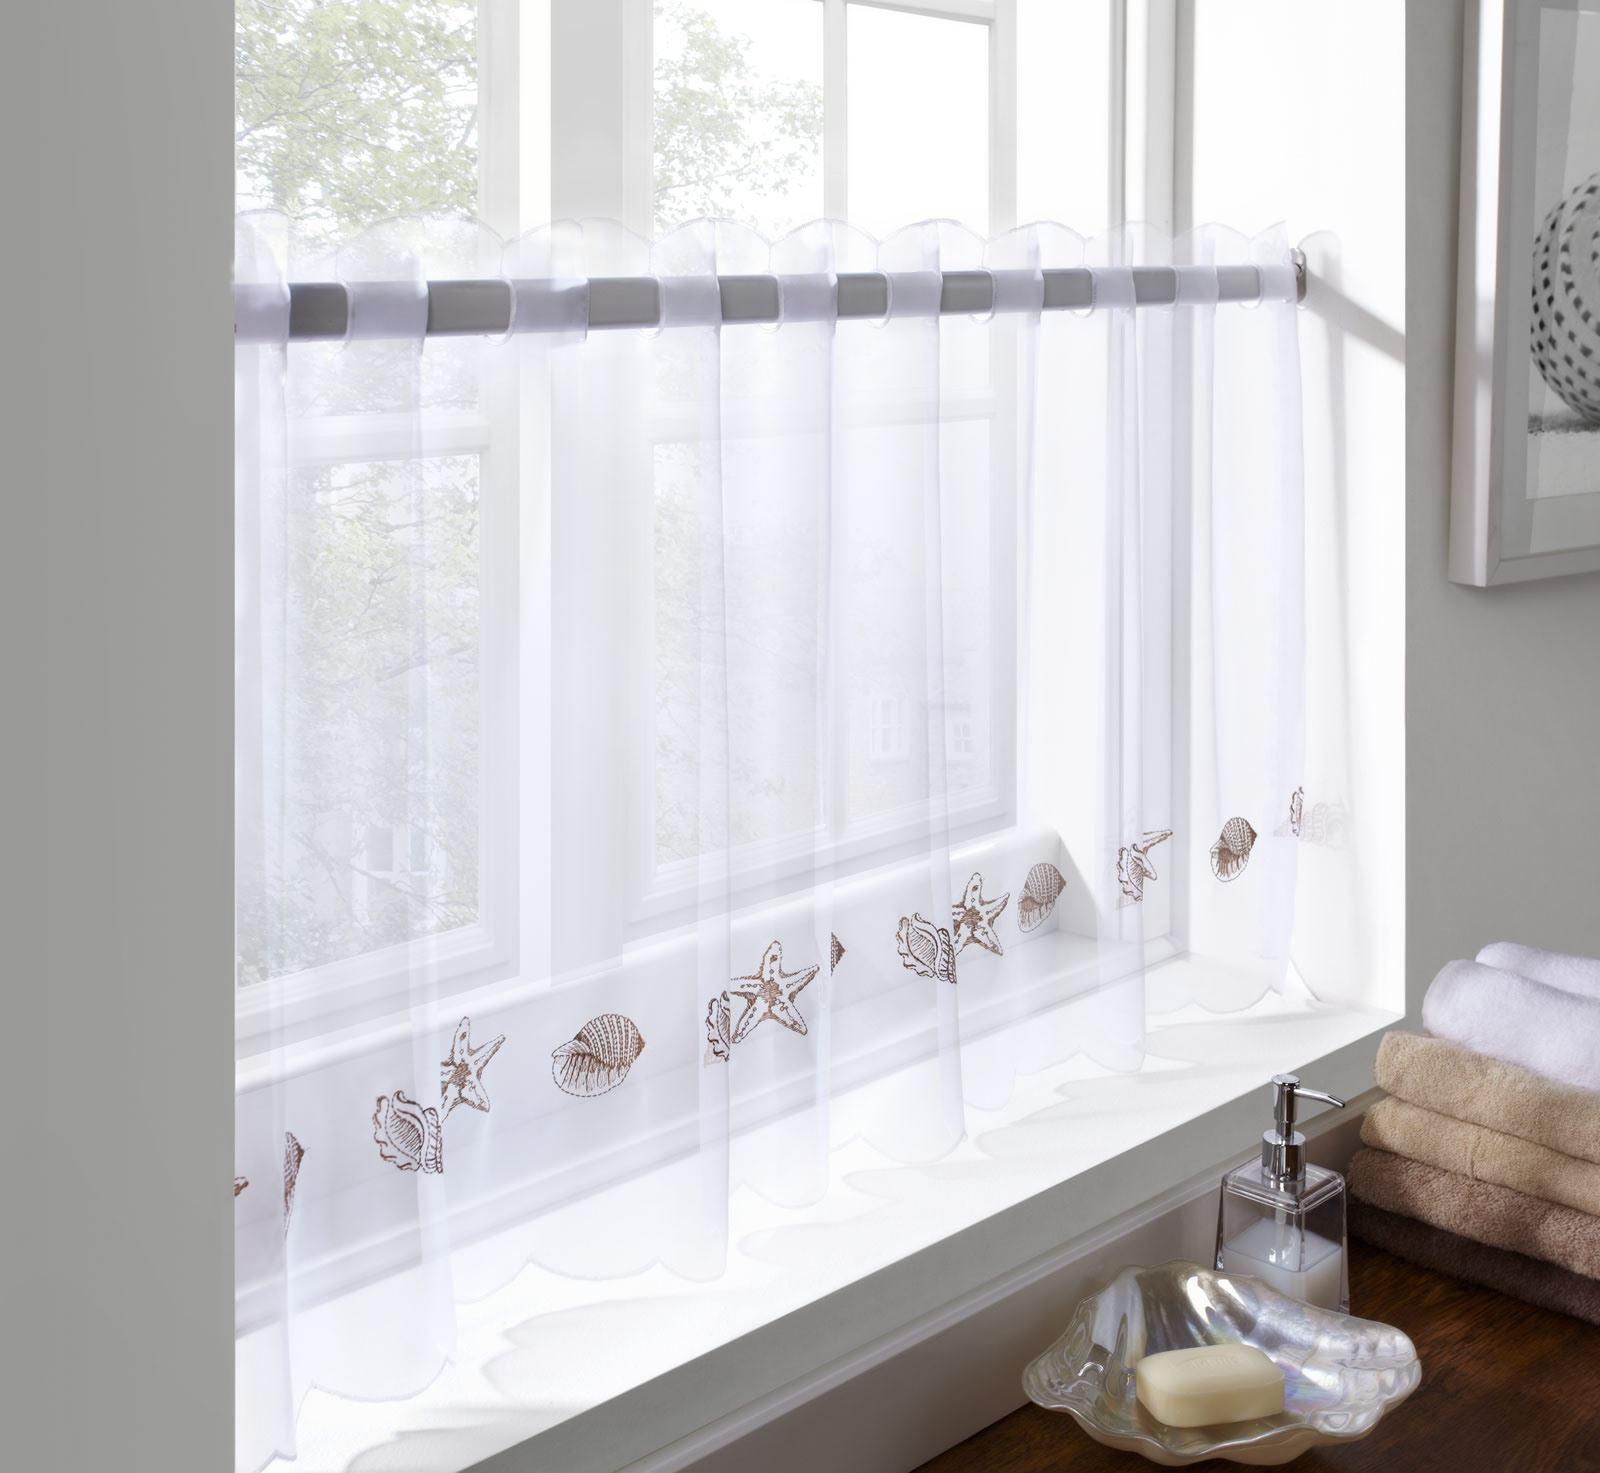 Cafe curtains for bathroom - Sheer Voile Cafe Panel Kitchen Bathroom Ready Made